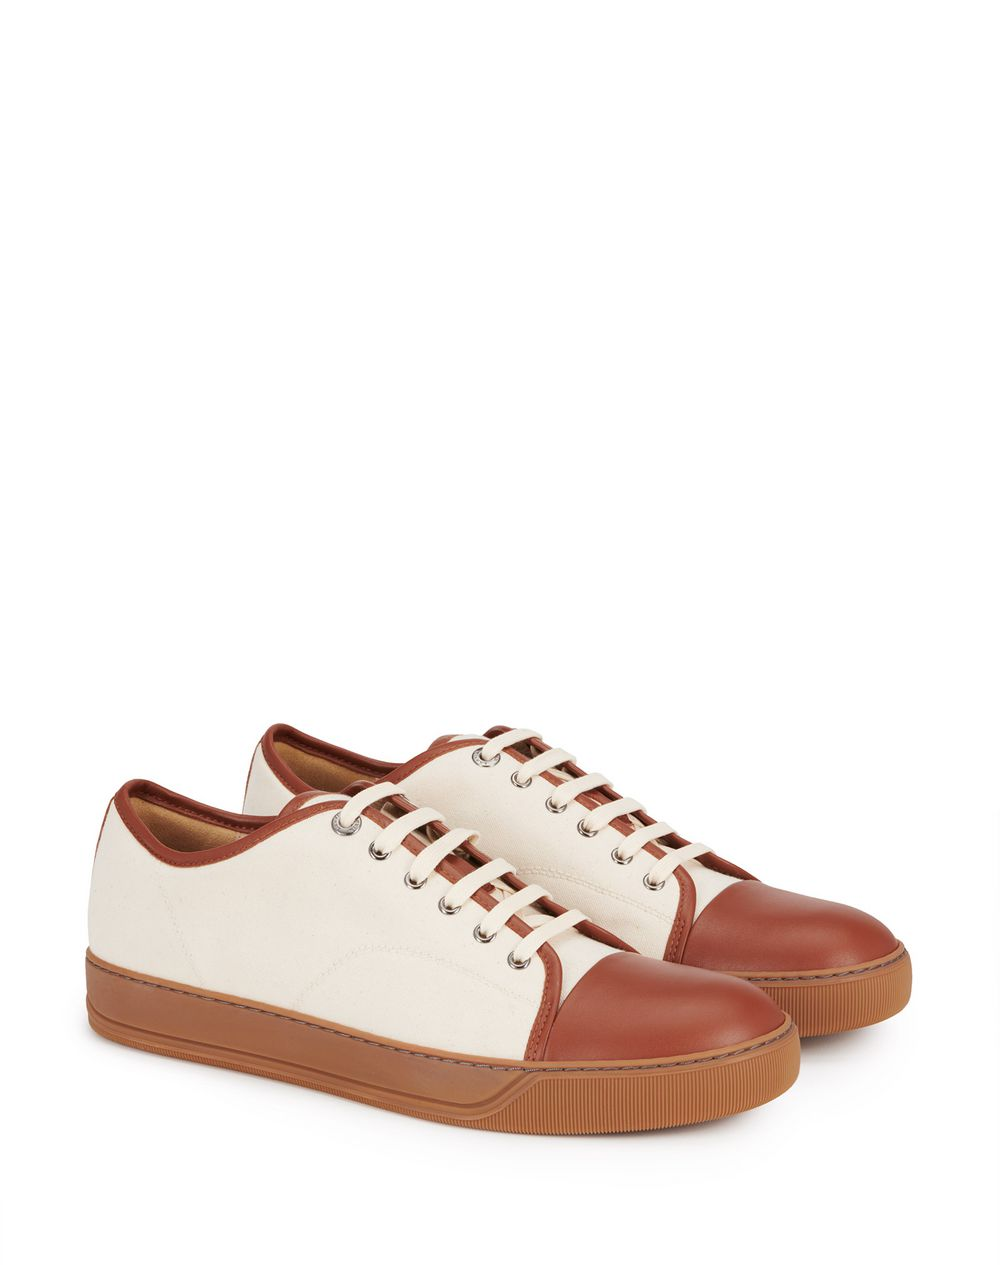 CANVAS DBB1 SNEAKERS - Lanvin